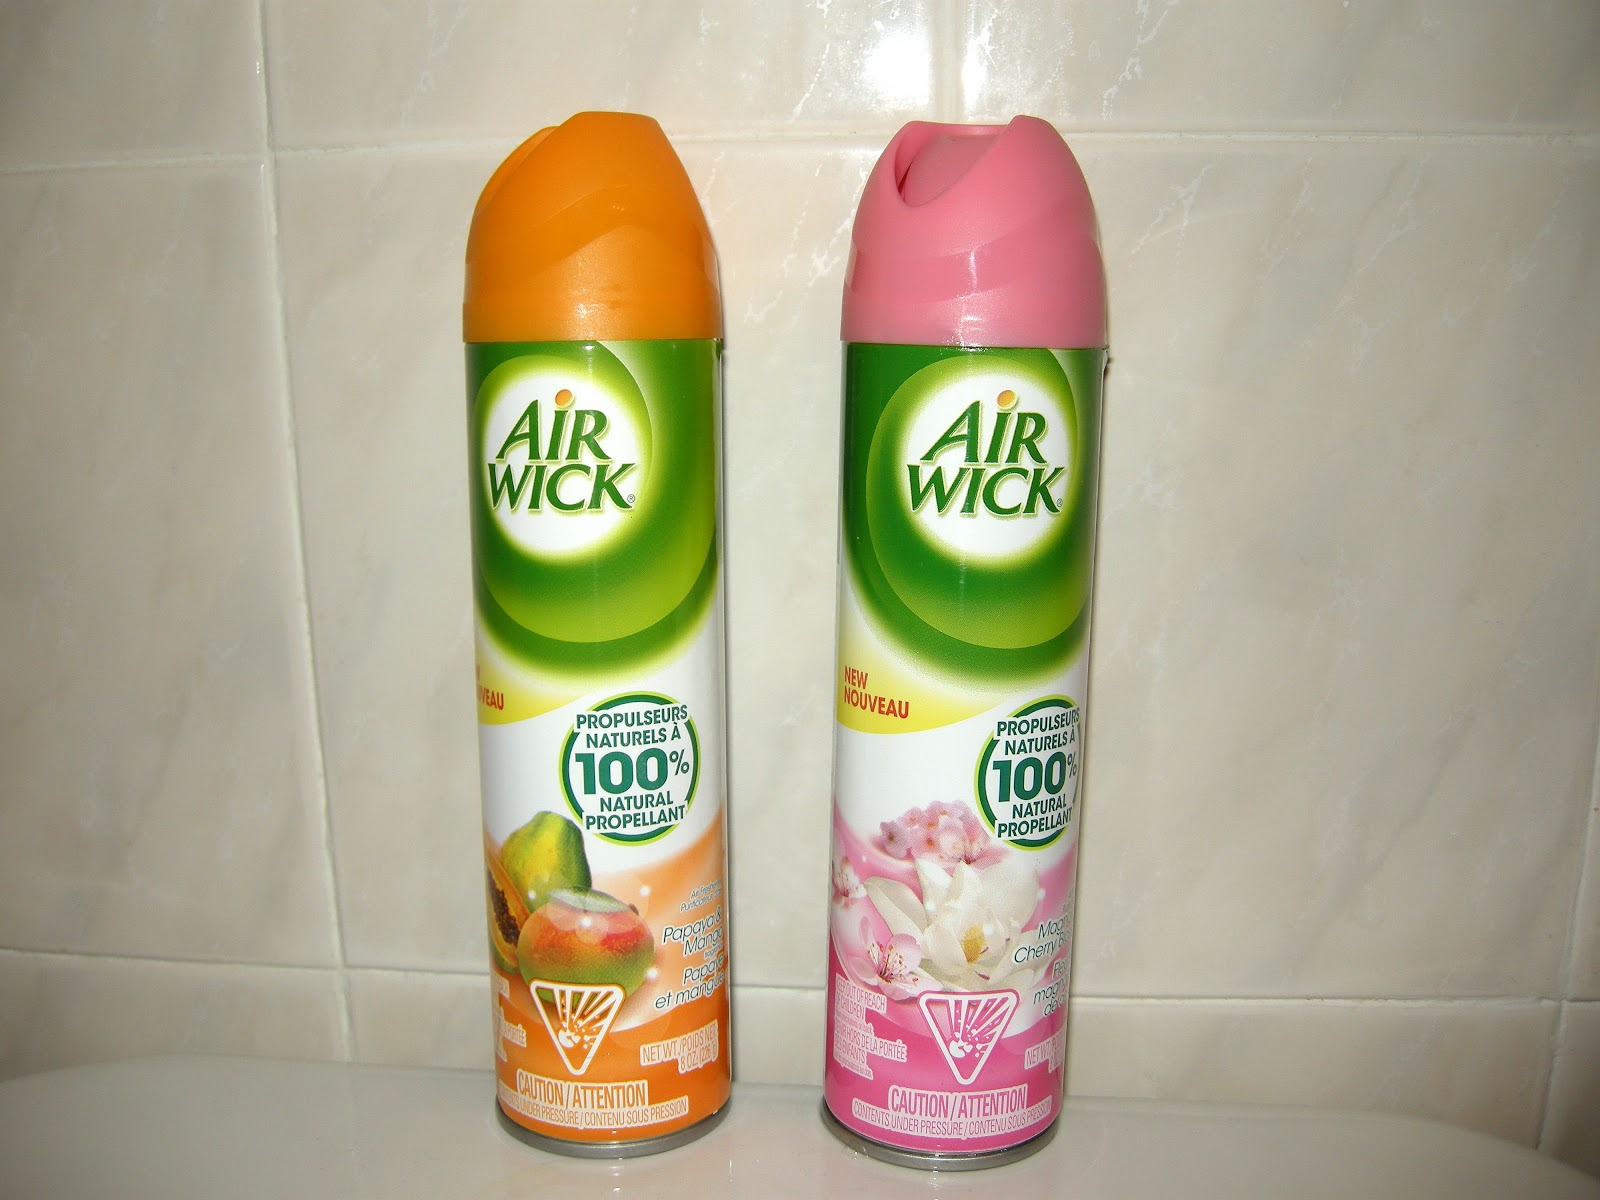 Bathroom Air Freshener My Jersey Life Want To Get Injured Use Air Wick Air Freshener